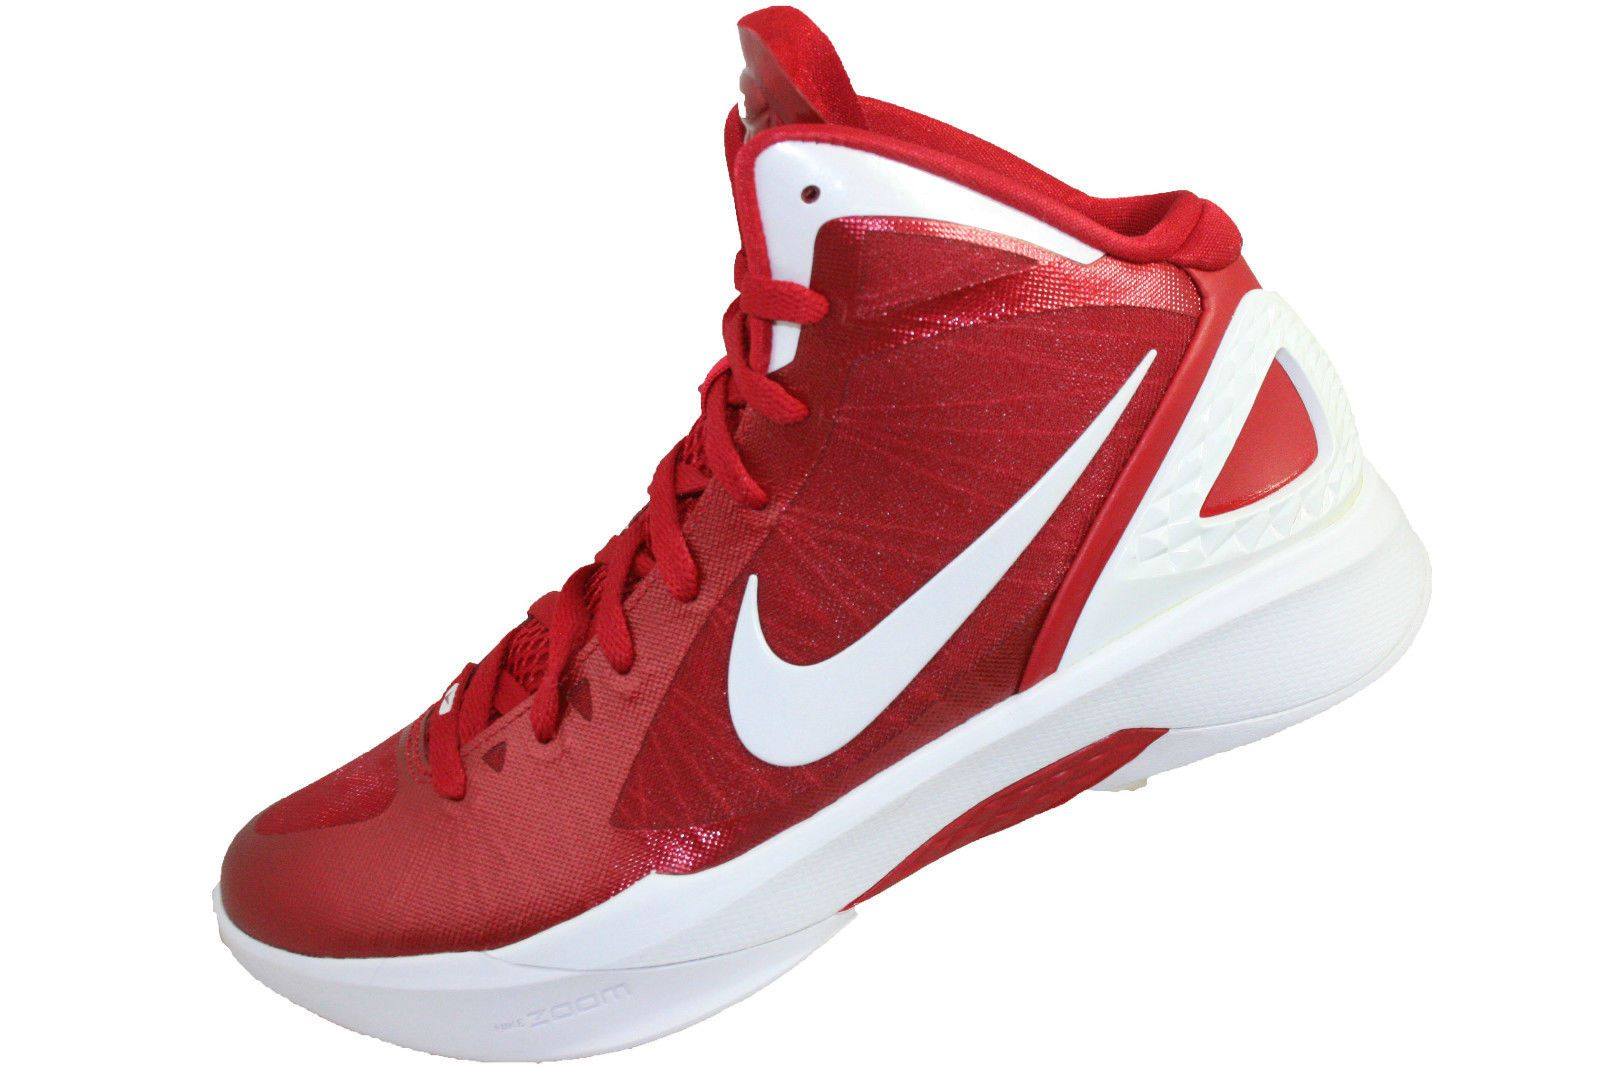 online retailer 71390 e9727 Womens Nike Zoom Hyperdunk 2011 TB Size 8.5 454150-600 red white silver